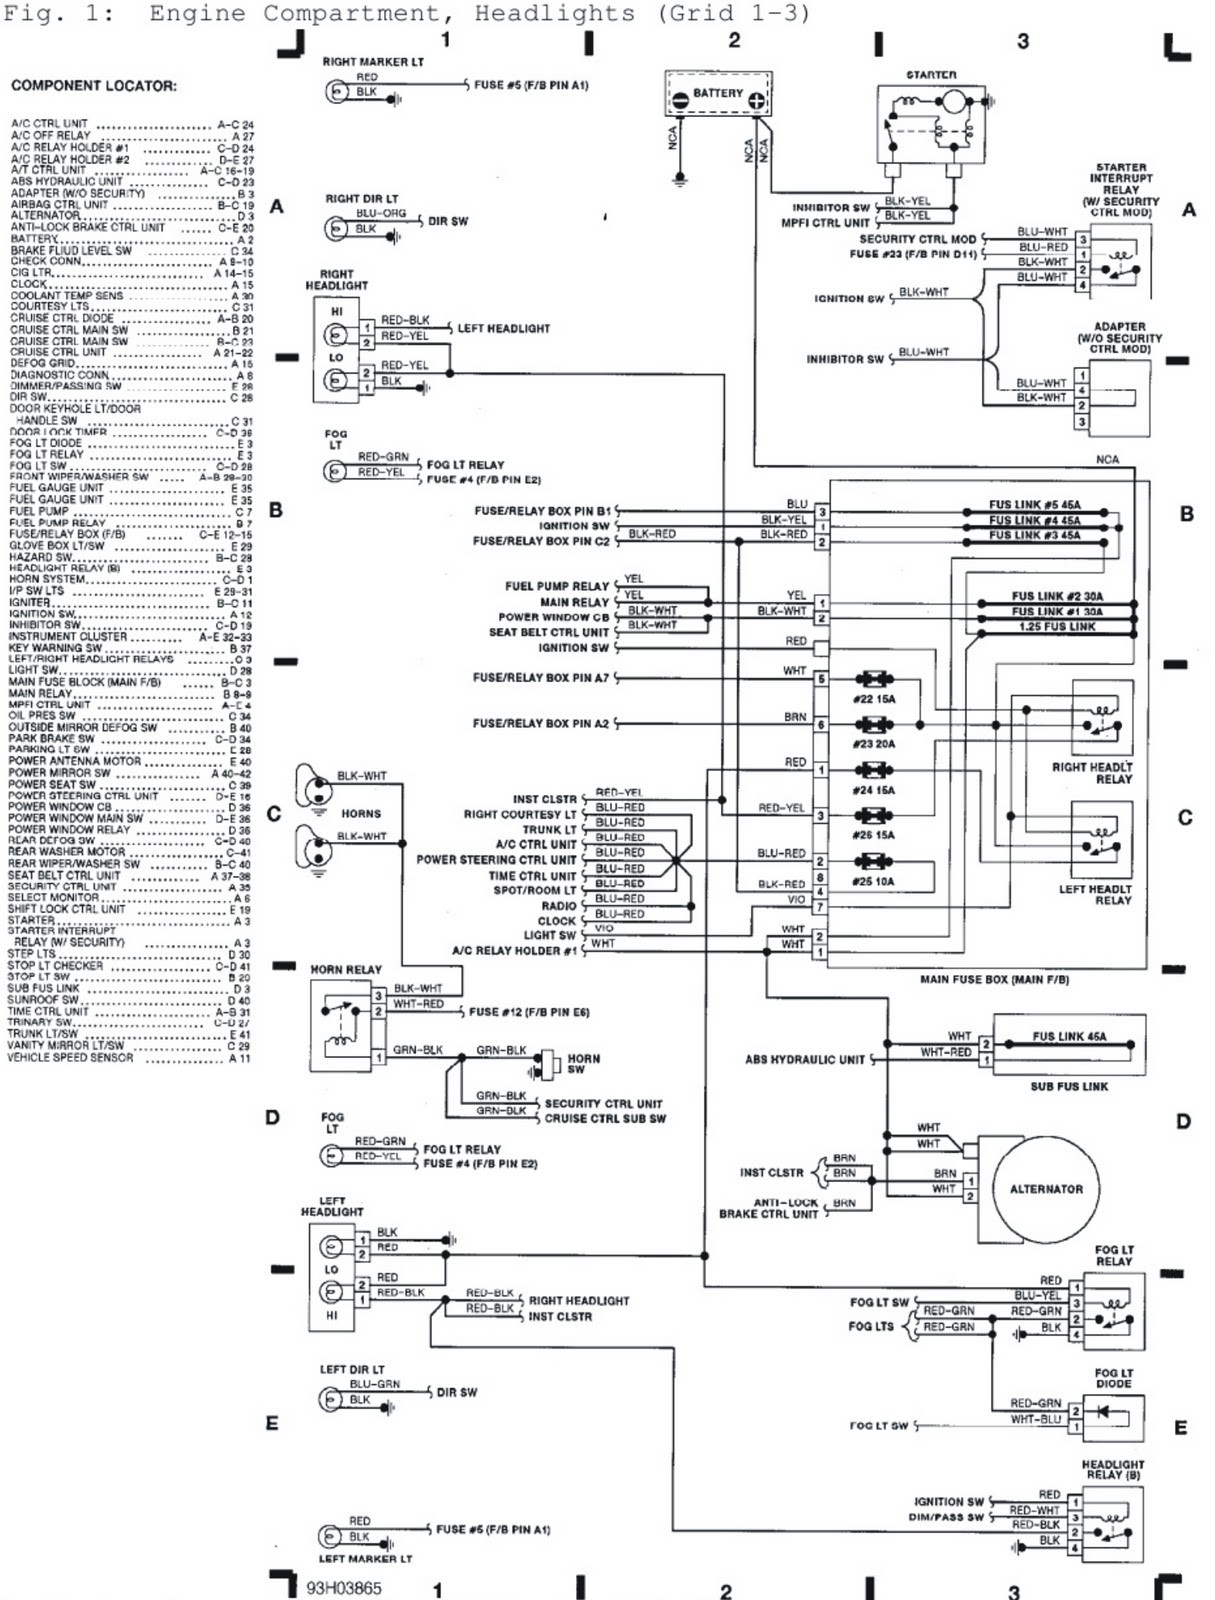 1997 Subaru Legacy Engine Diagram Wiring Diagram 2005